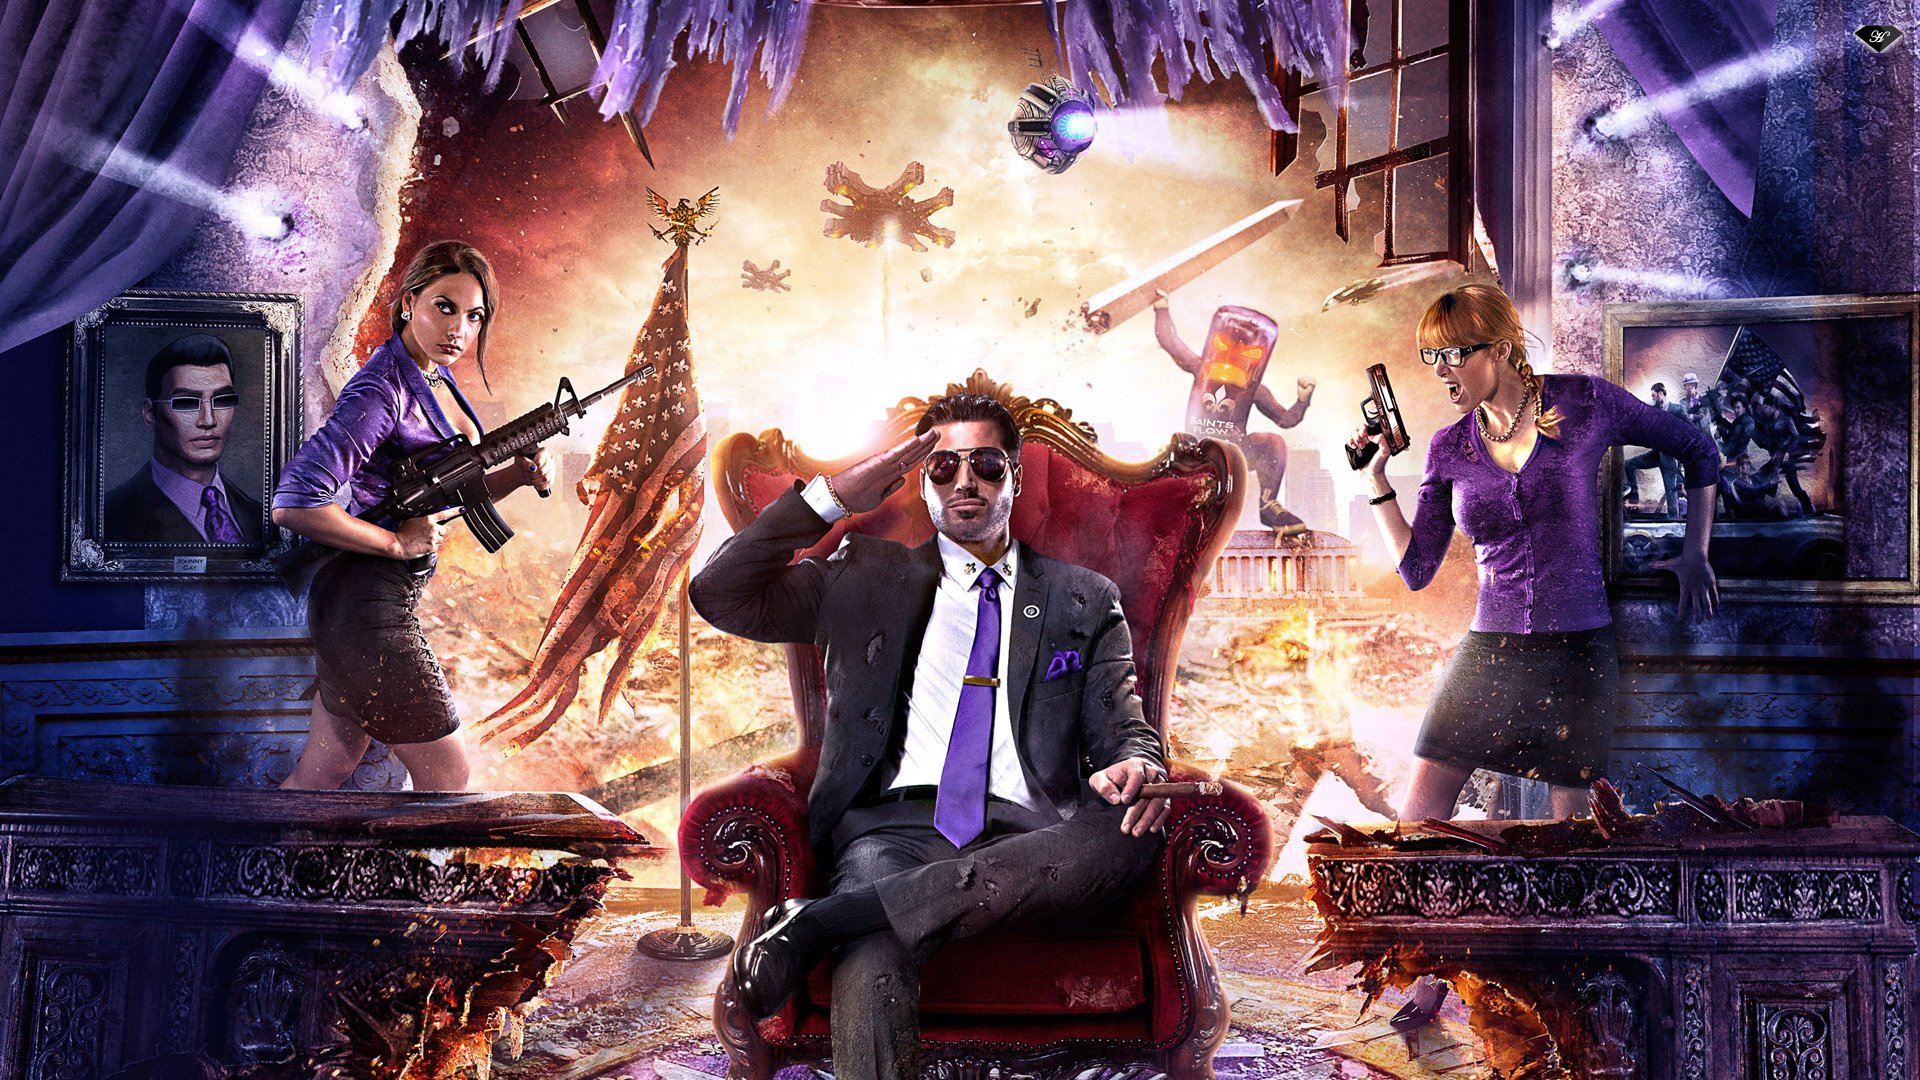 Saints Row 4 Wallpapers: Saints Row IV Wallpaper HD Wallpaper